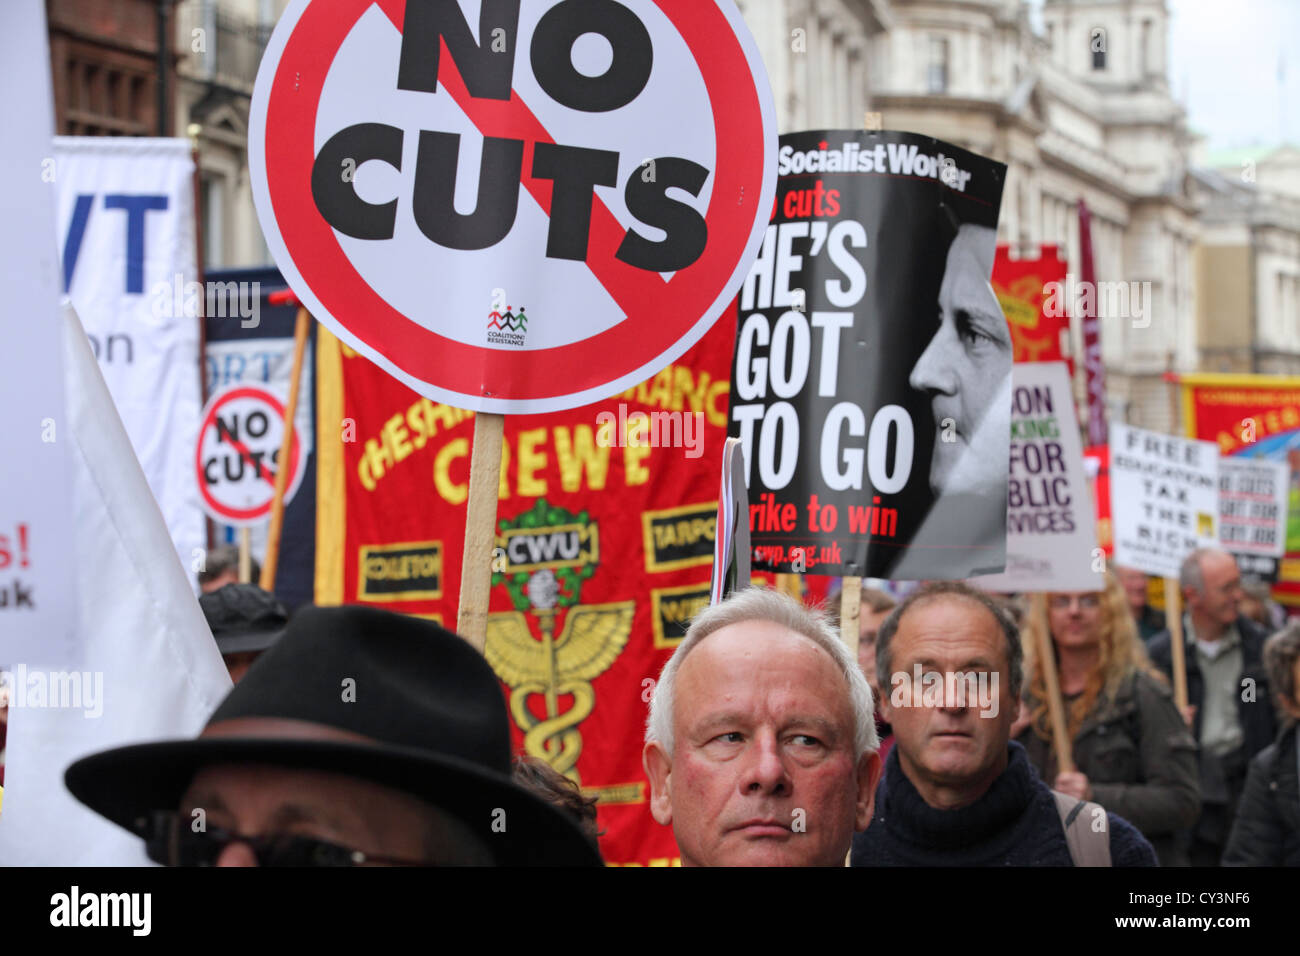 Large number mass demonstration protest march Piccadilly London. Anti-Cuts No Cuts anti-Cameron government, TUC - Stock Image